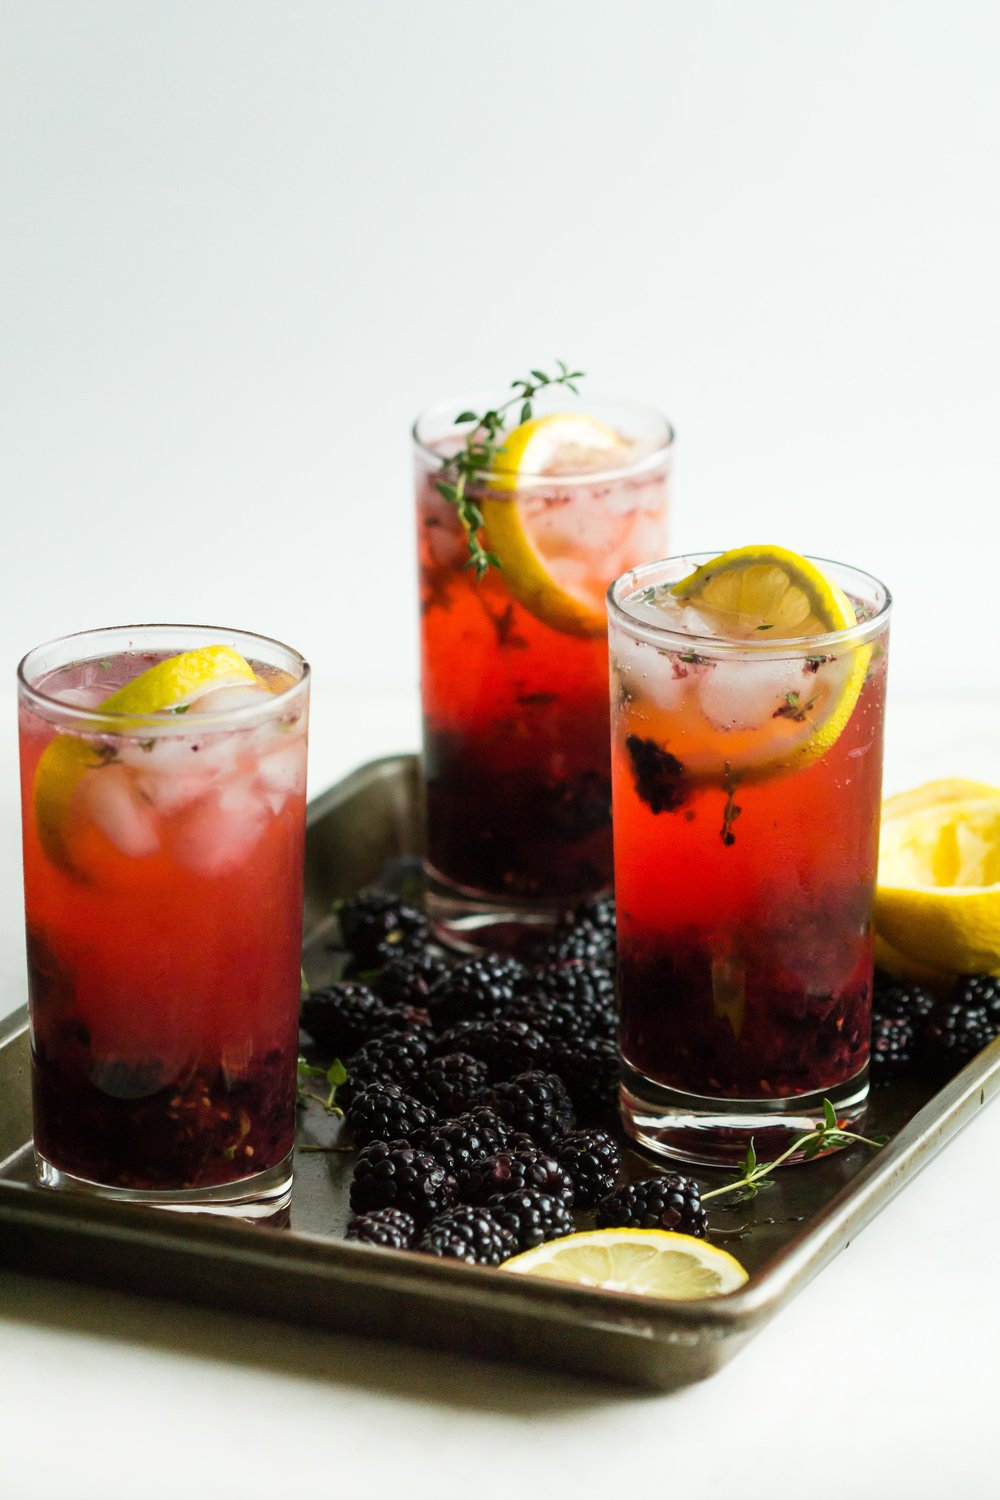 Blackberry-Thyme Vodka Collins - Sarah J. Hauser